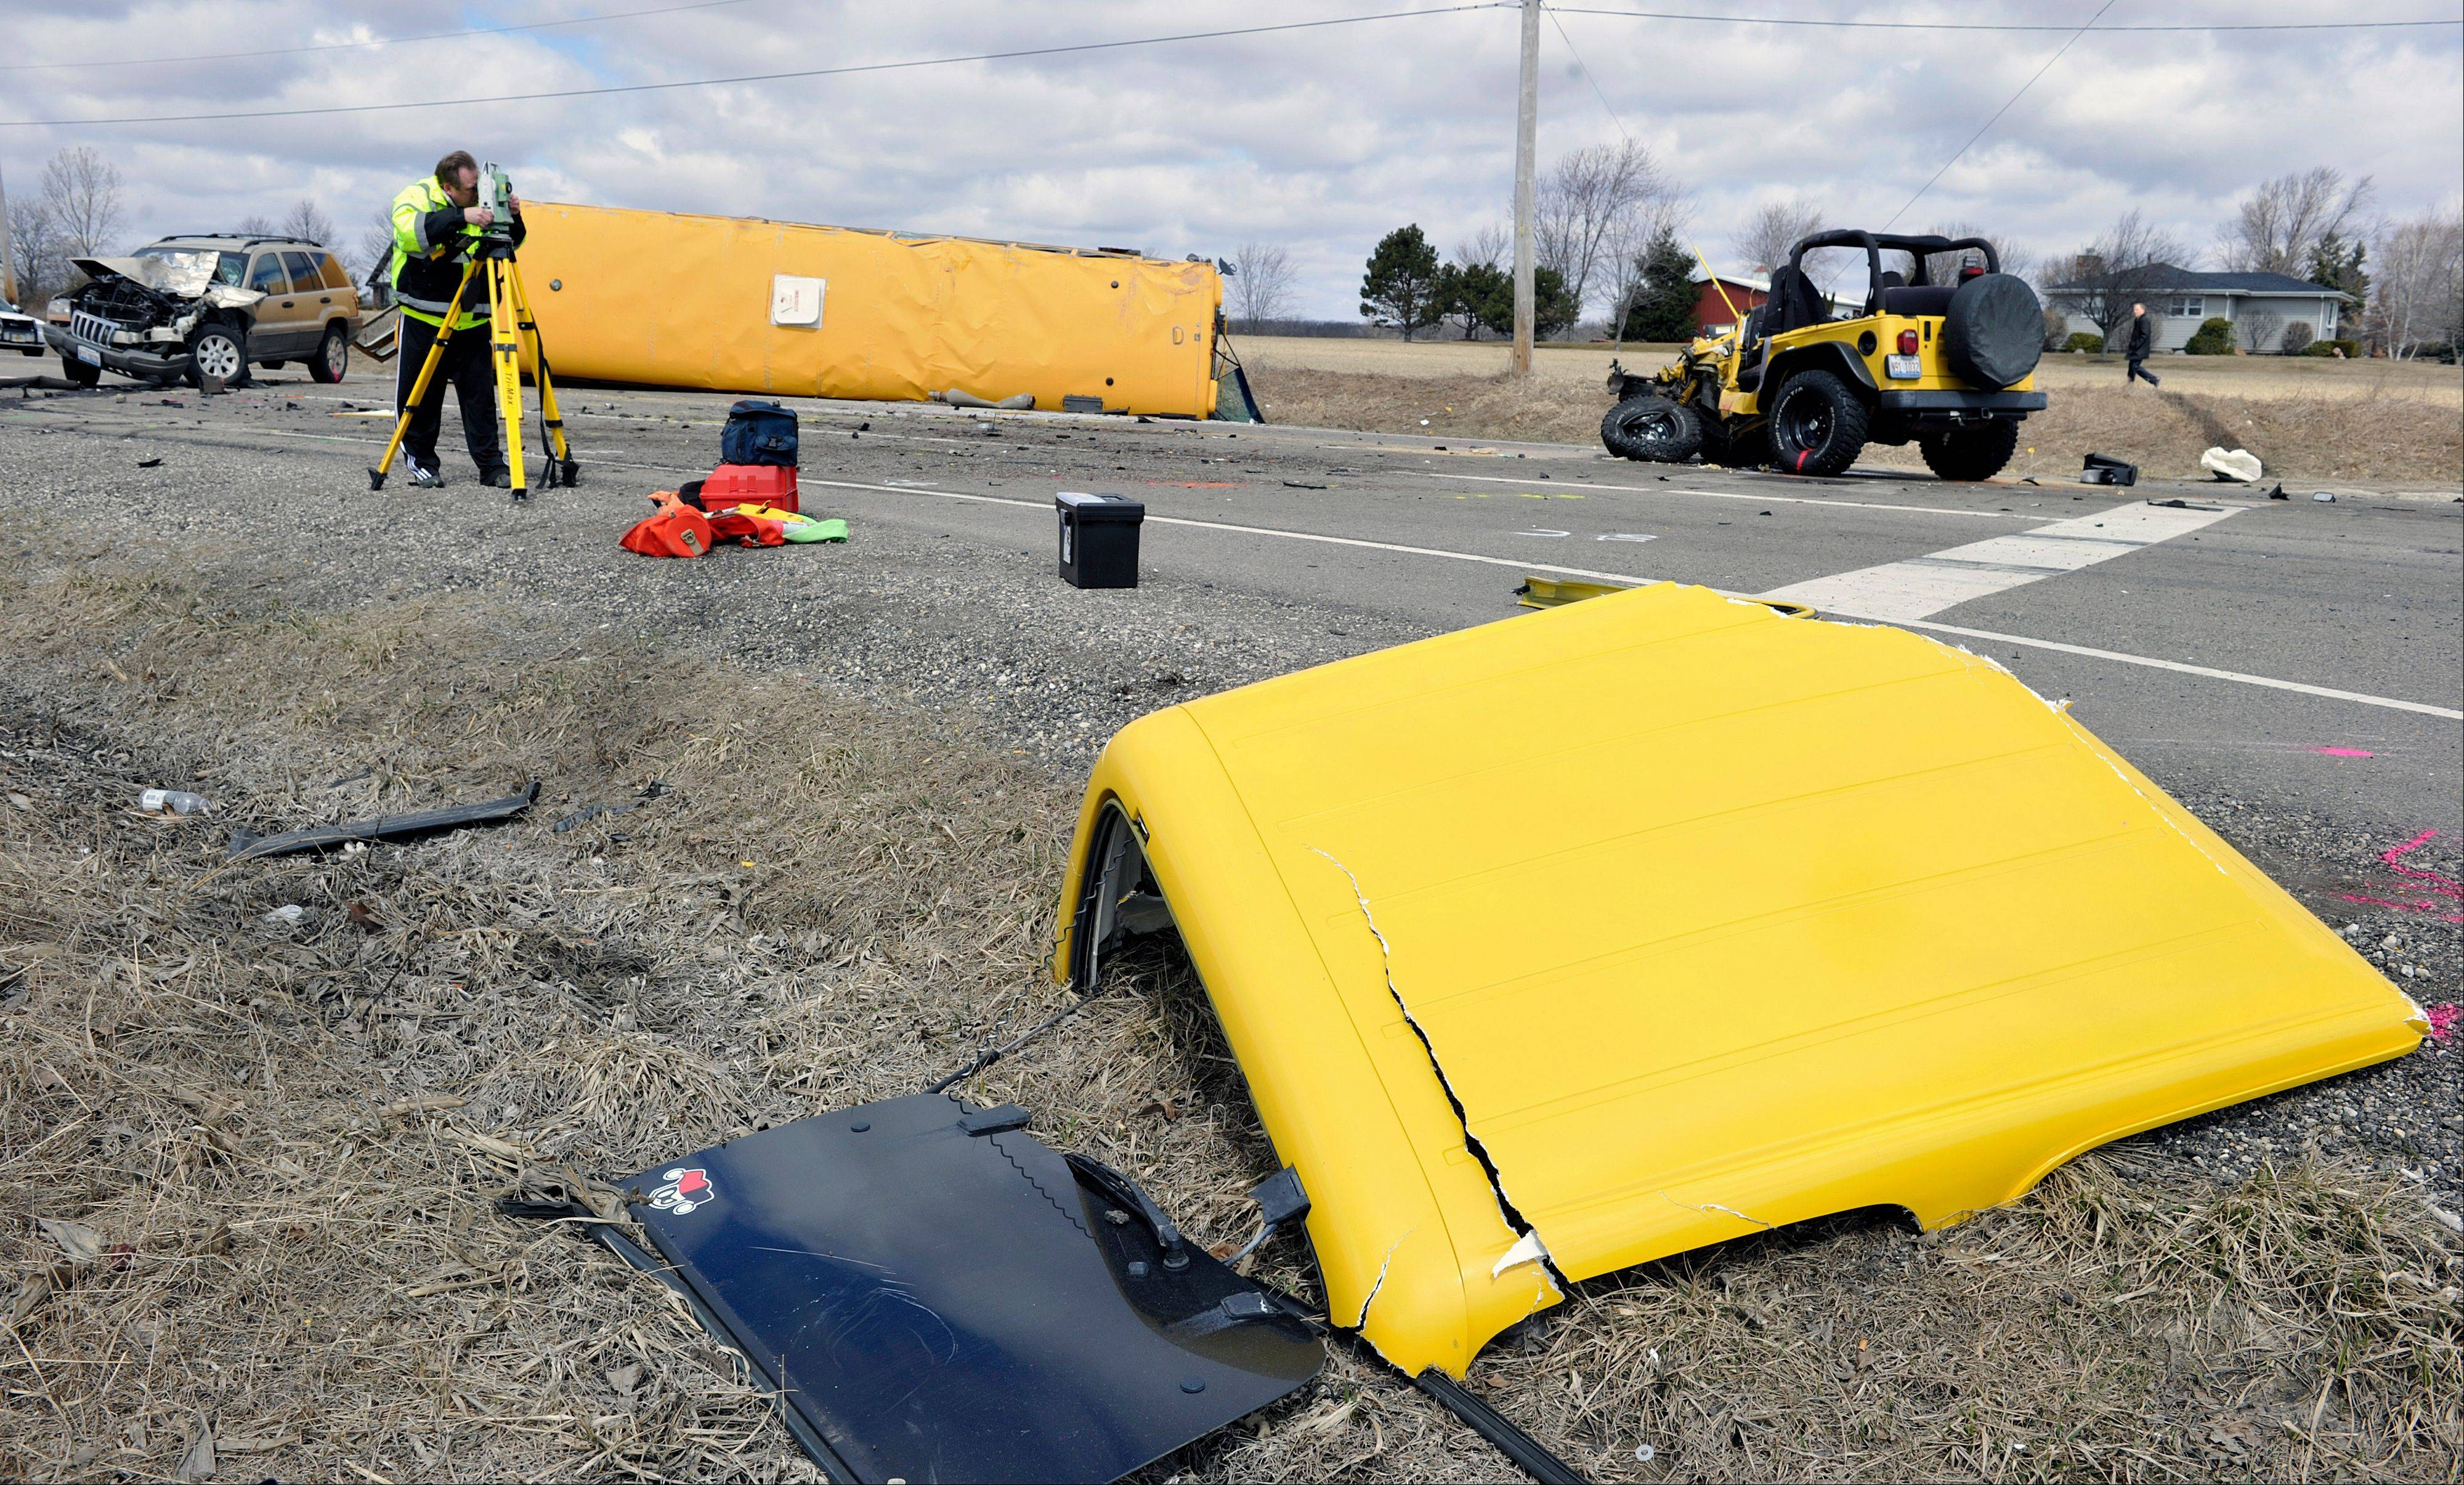 Investigators gather evidence from the scene of a three vehicle accident, including a school bus where the driver of a Jeep Wrangler was killed on Friday, April 5, 2013, near Wadsworth, Ill. Over two dozen schoolchildren were on the bus, most receiving minor injuries.